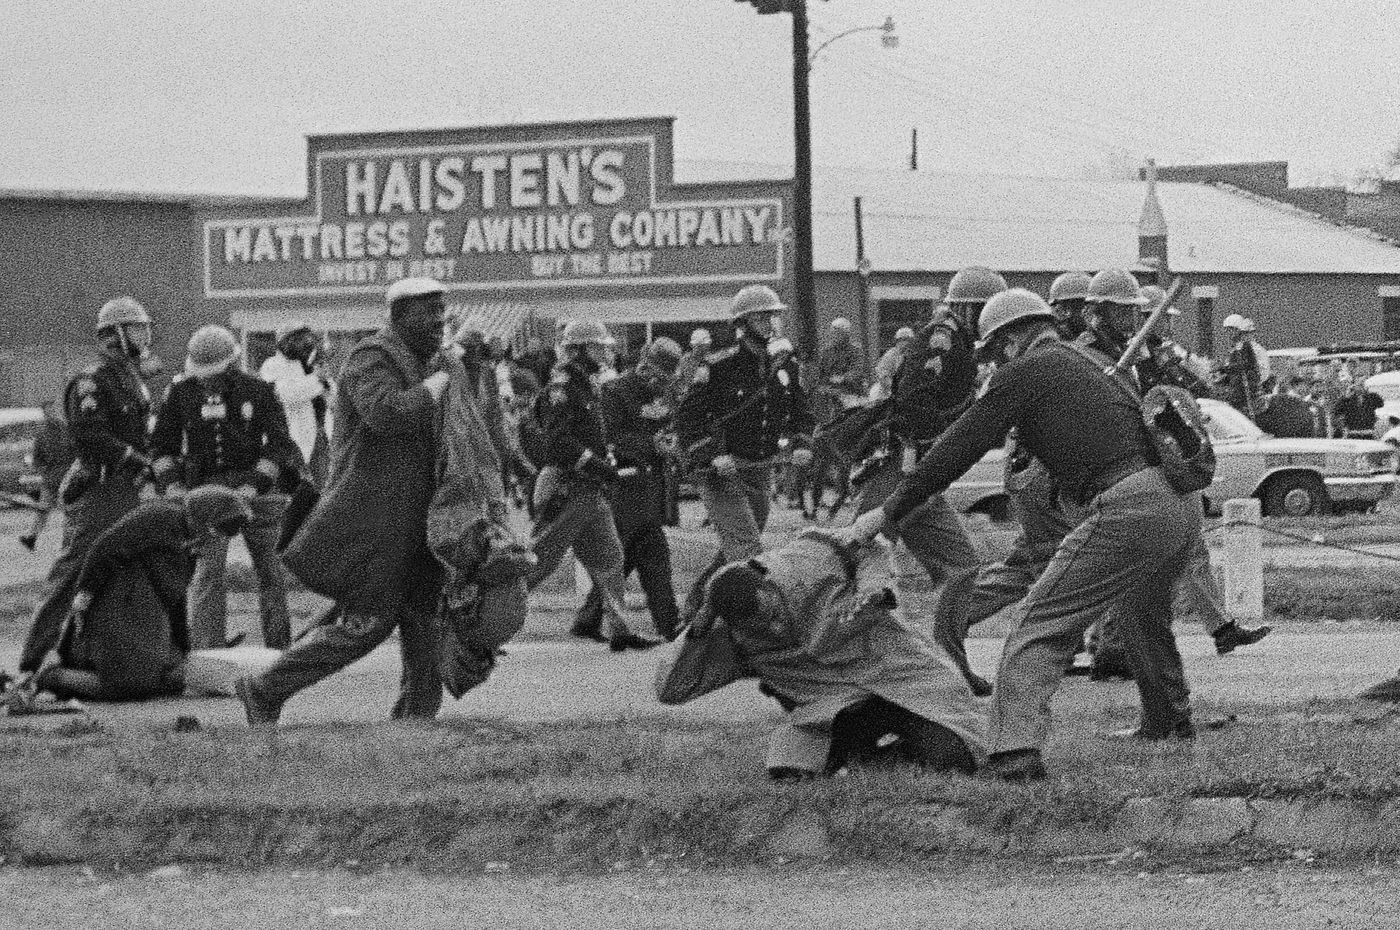 State troopers use billy clubs against civil rights marchers, including John Lewis (foreground) in Selma, Ala., on March 7, 1965.